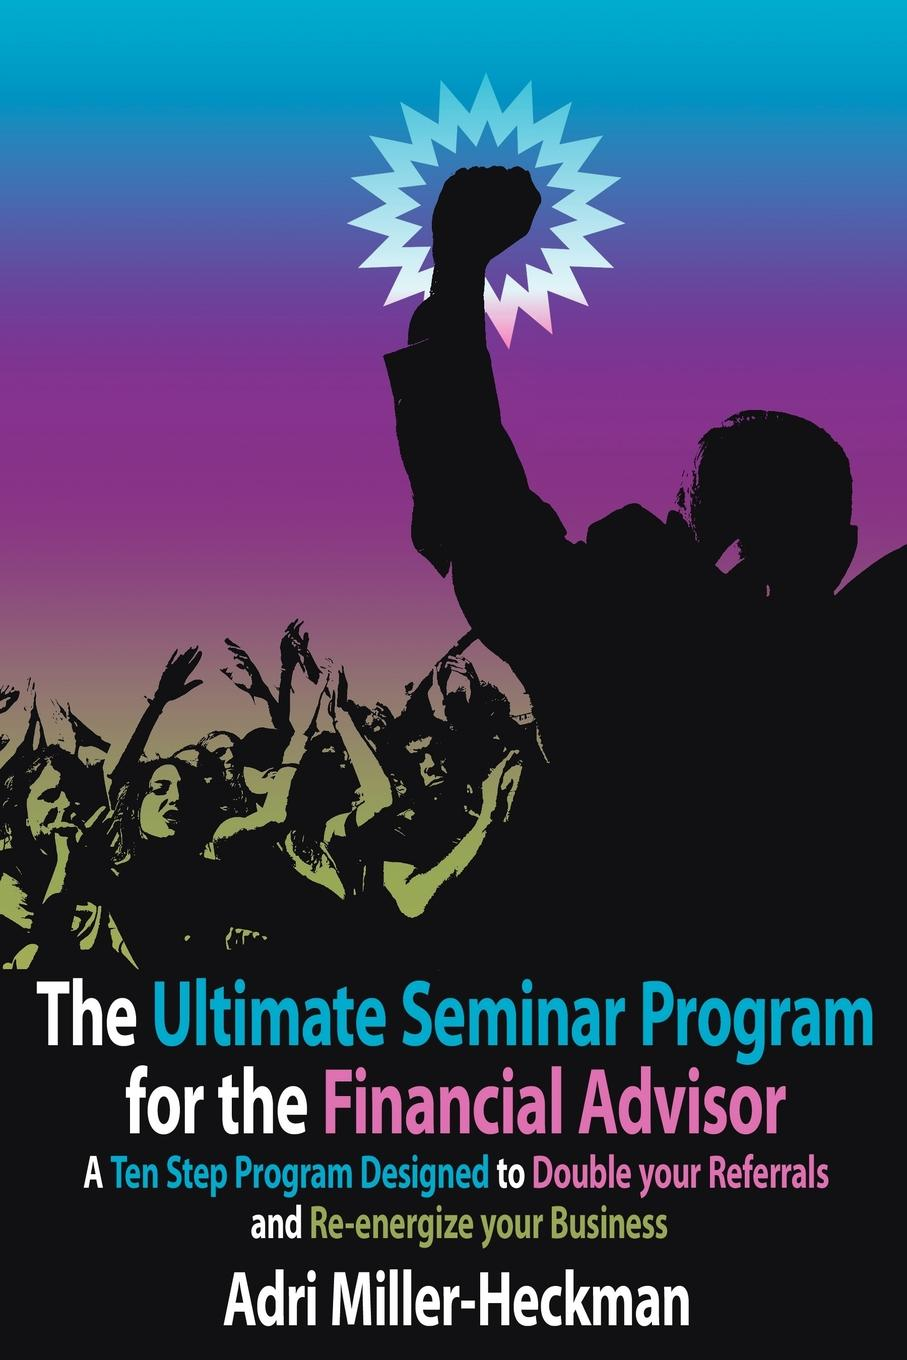 The Ultimate Seminar Program for the Financial Advisor. A Ten Step Program Designed to Double your Referrals and Re-energize your Business While most advisors recognize the impact and marketing value...